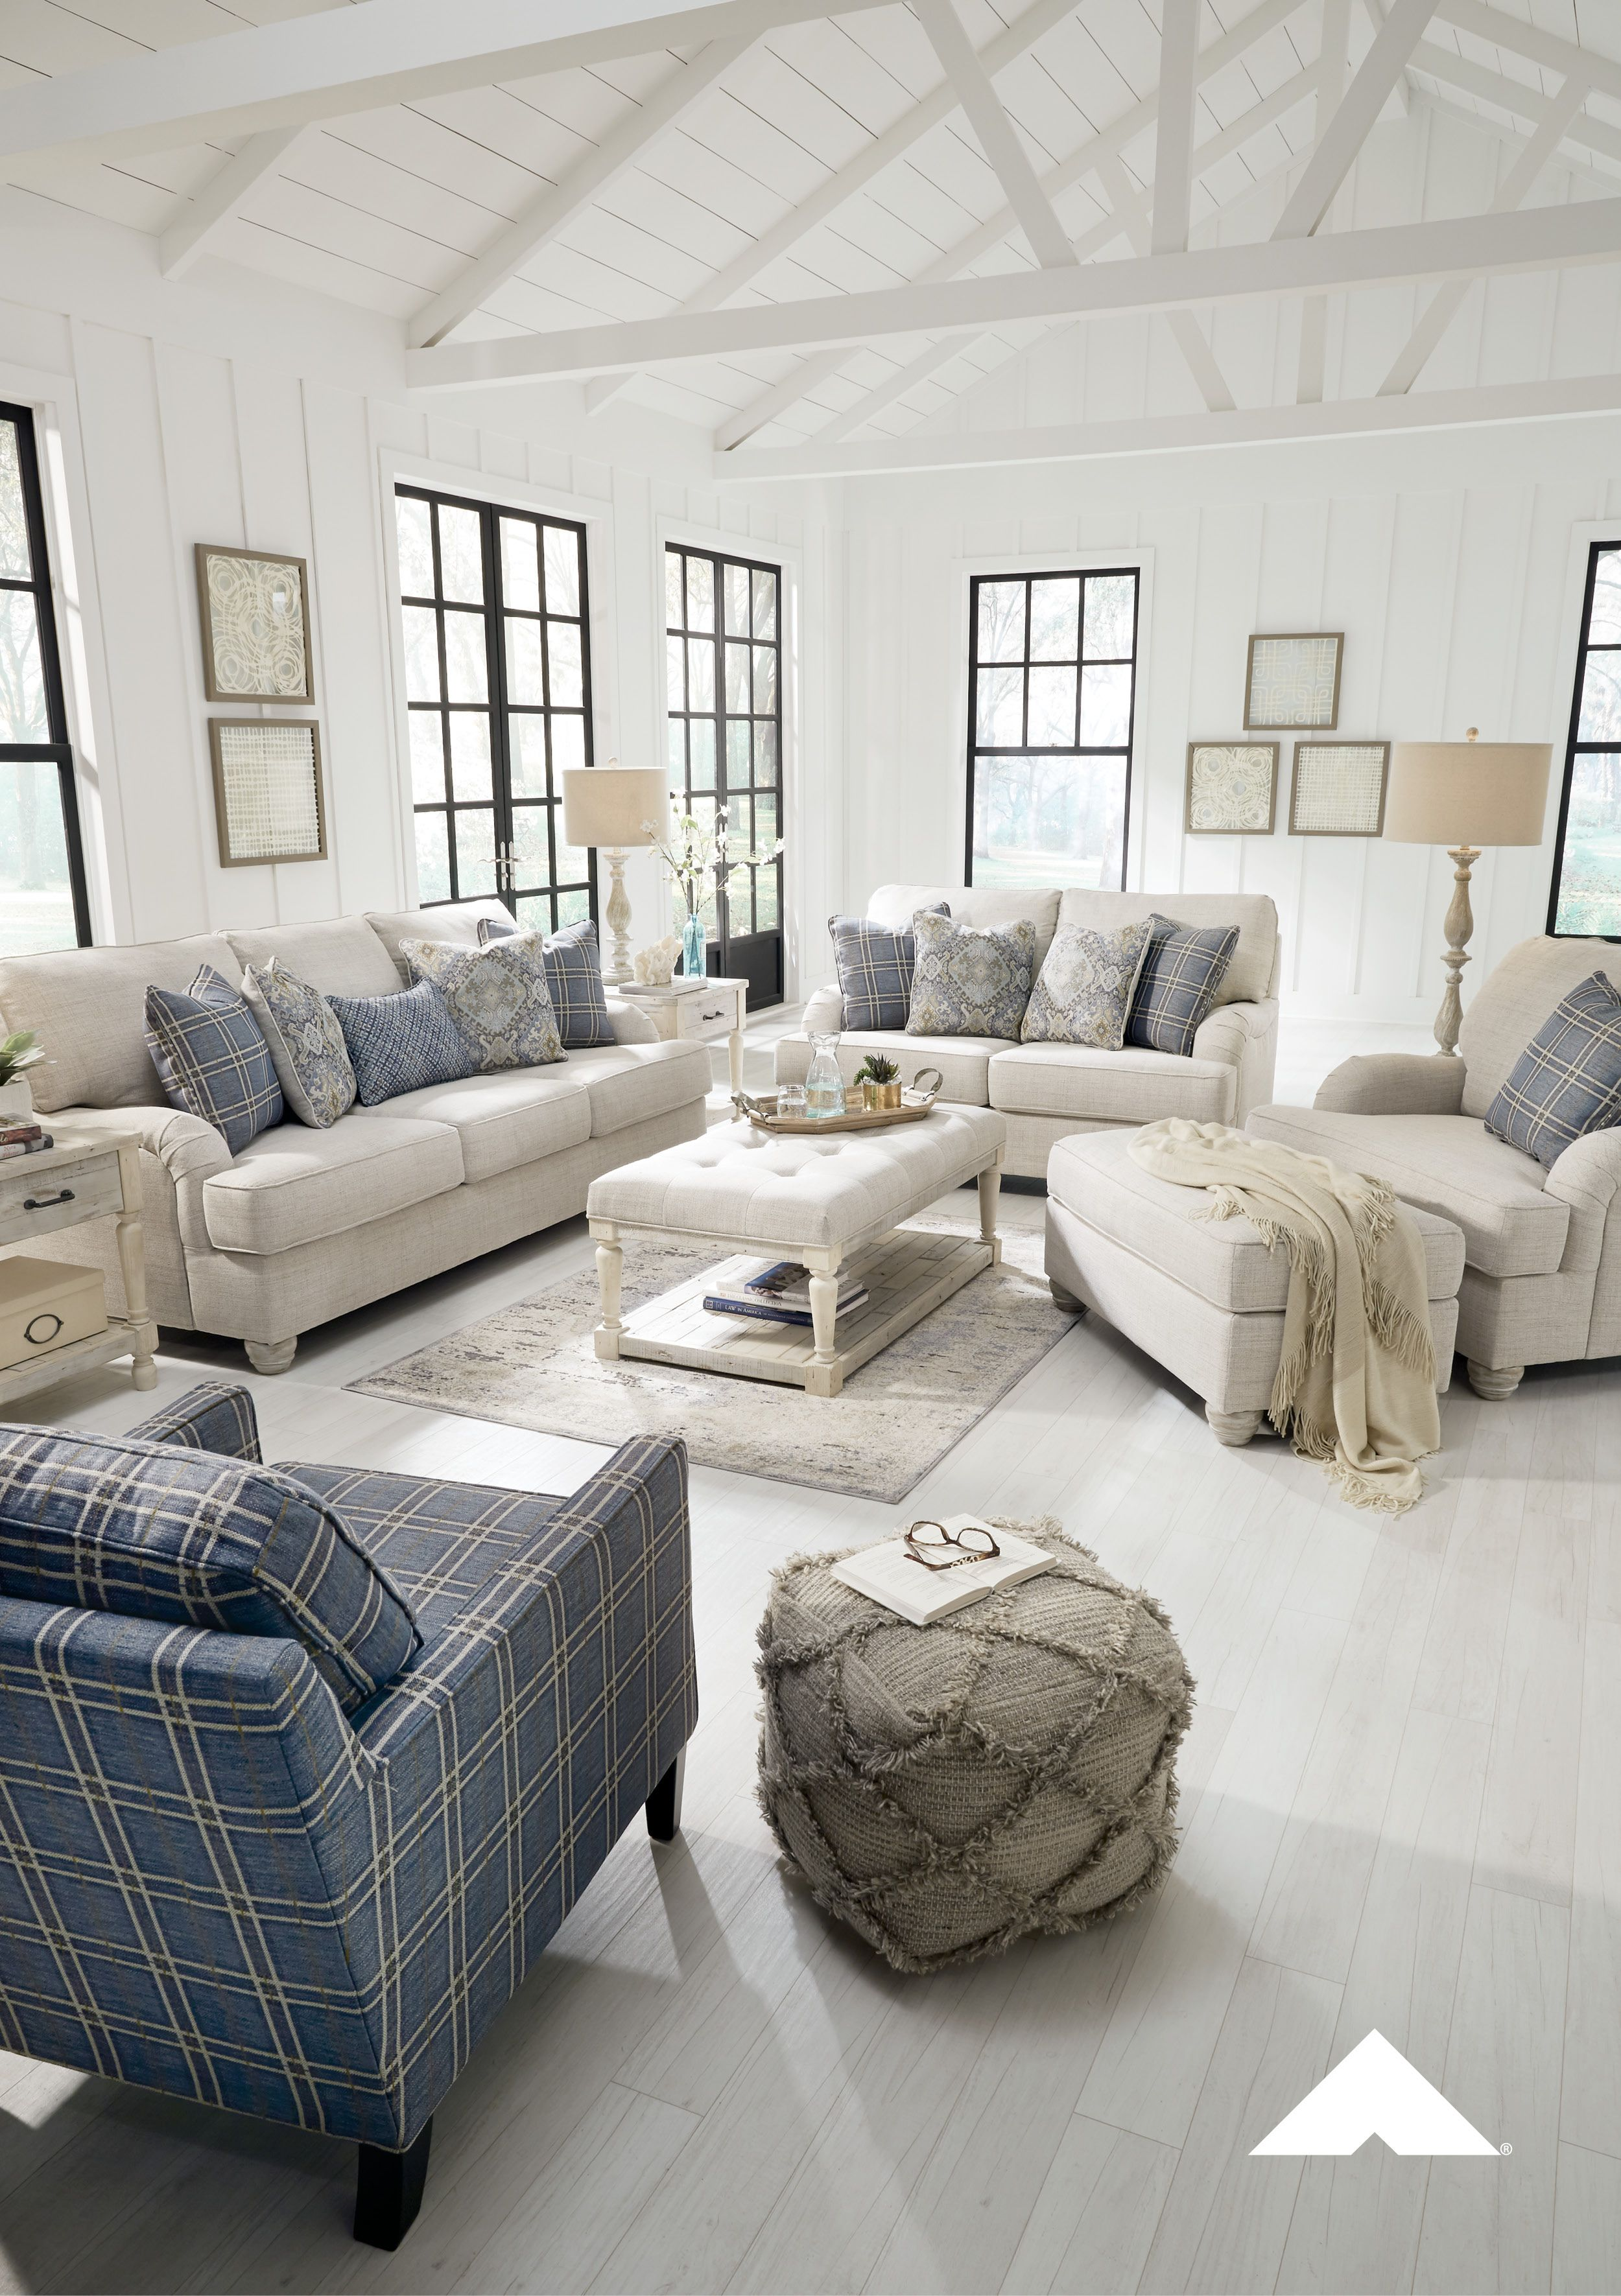 Pastoral Charm Living Room By Ashley Furniture Farmhouse Farmhousestyle Livingroom Livingroomdesign Interiordesign Coastal Living Rooms Home Home Decor